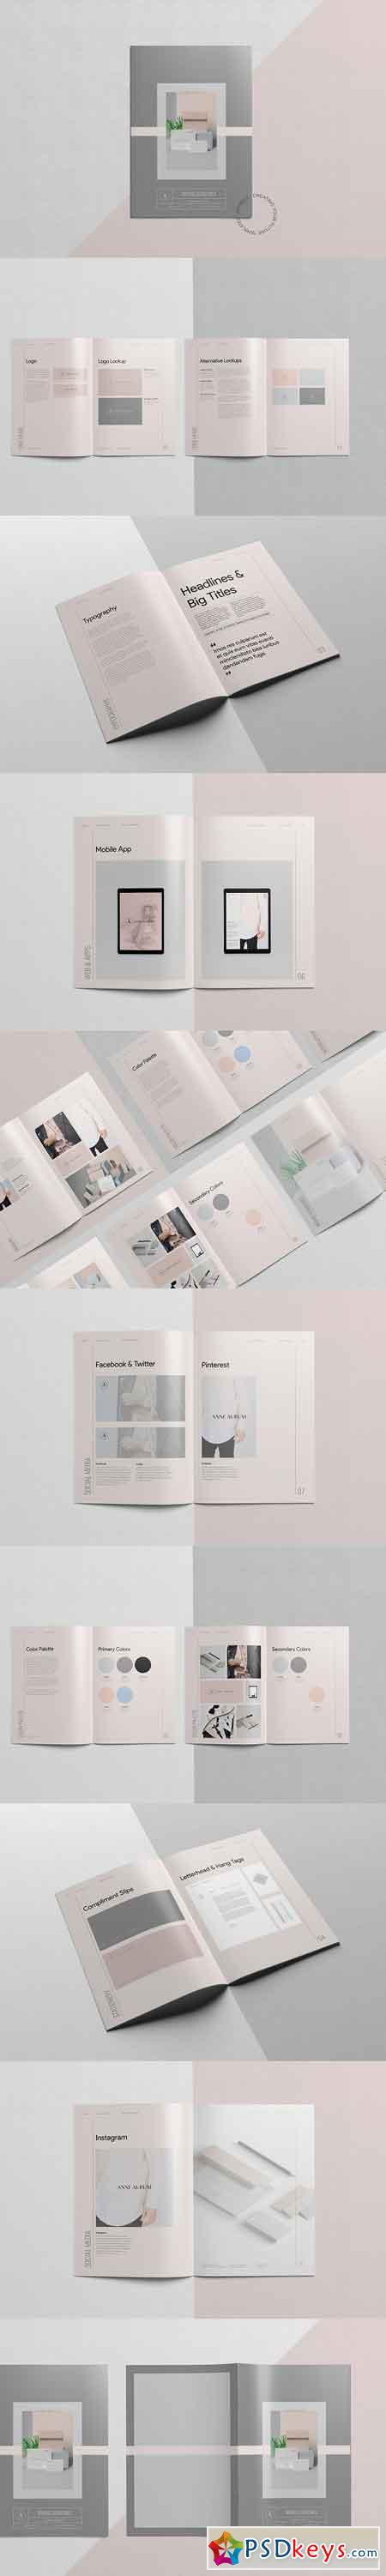 Anderson Brand Guidelines 2154467